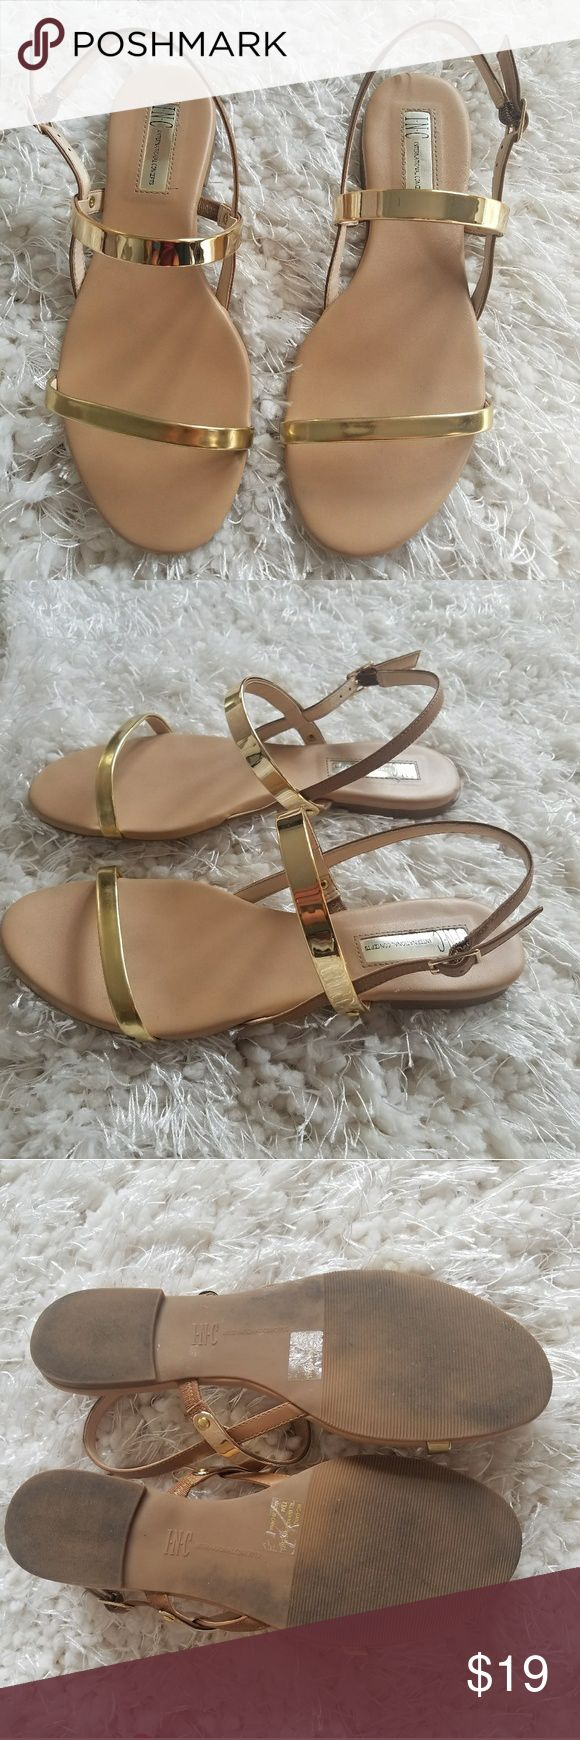 Gold Strappy Sandals EUC I've worn these a few times they are still in excellent shape, size 7.5 from Macy's,  INC brand. 2 Gold straps across the top and the back strap is tan. INC International Concepts Shoes Sandals